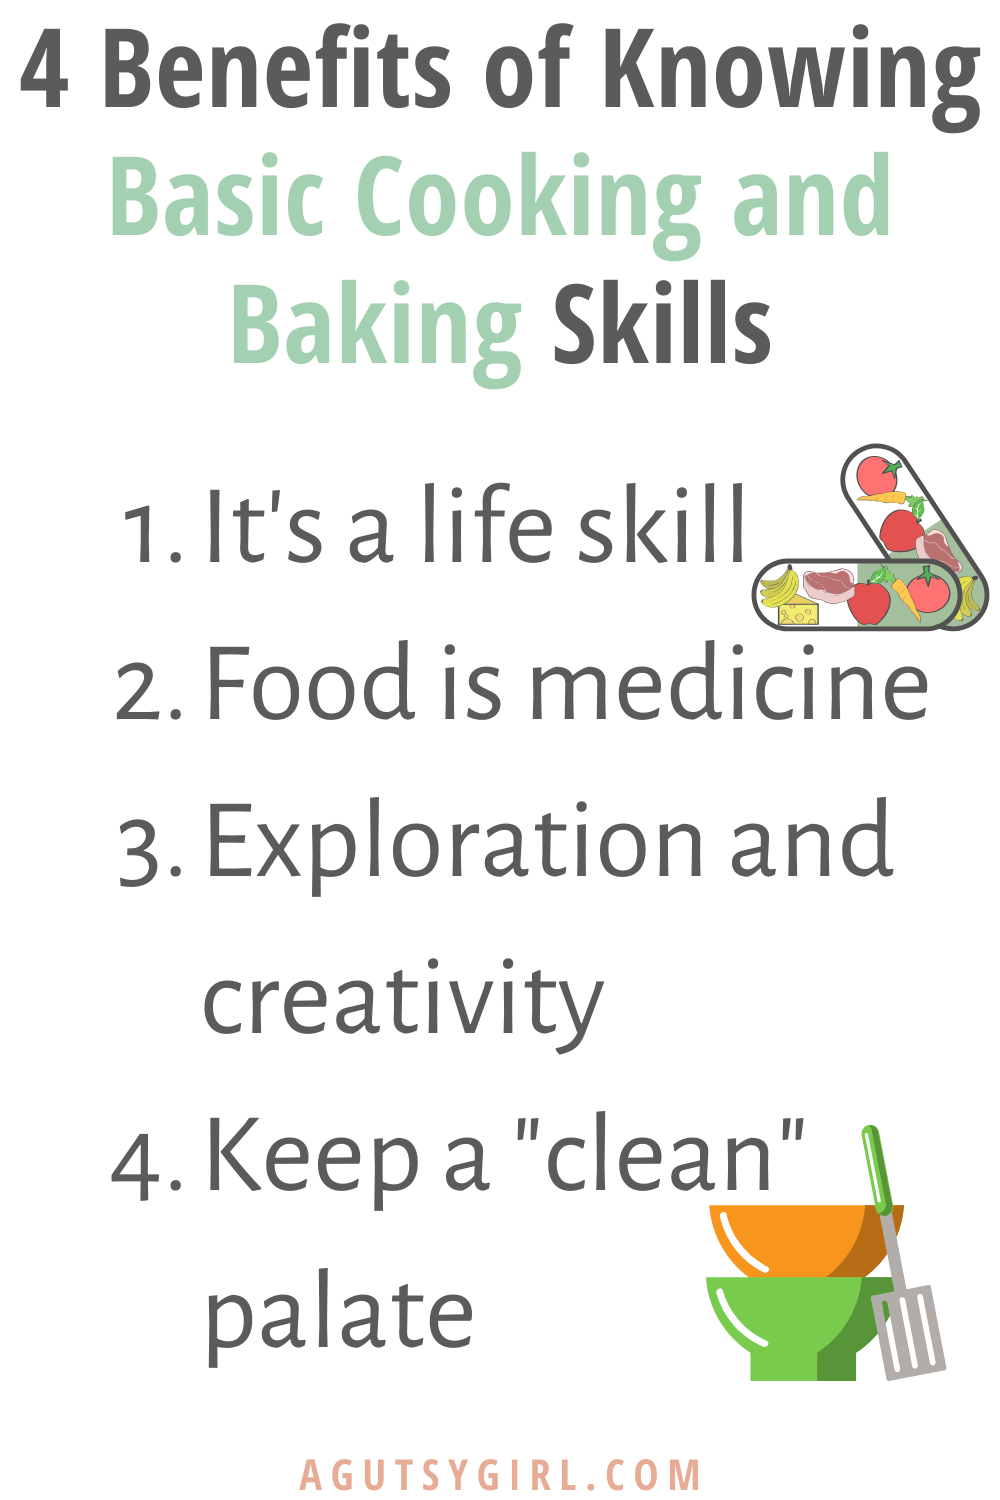 4 Benefits of Knowing Basic Cooking and Baking Skills agutsygirl.com #guthealth #cookingtips #bakingtips #healthyliving